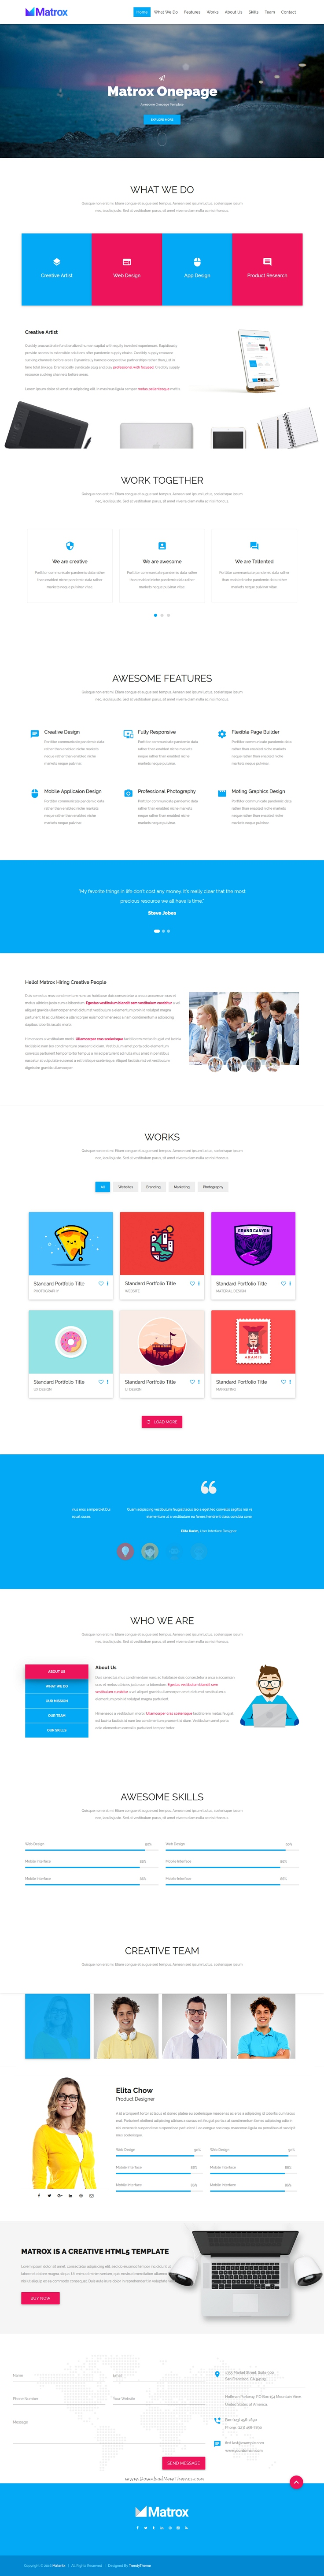 Matrox is a material design based responsive Bootstrap HTML